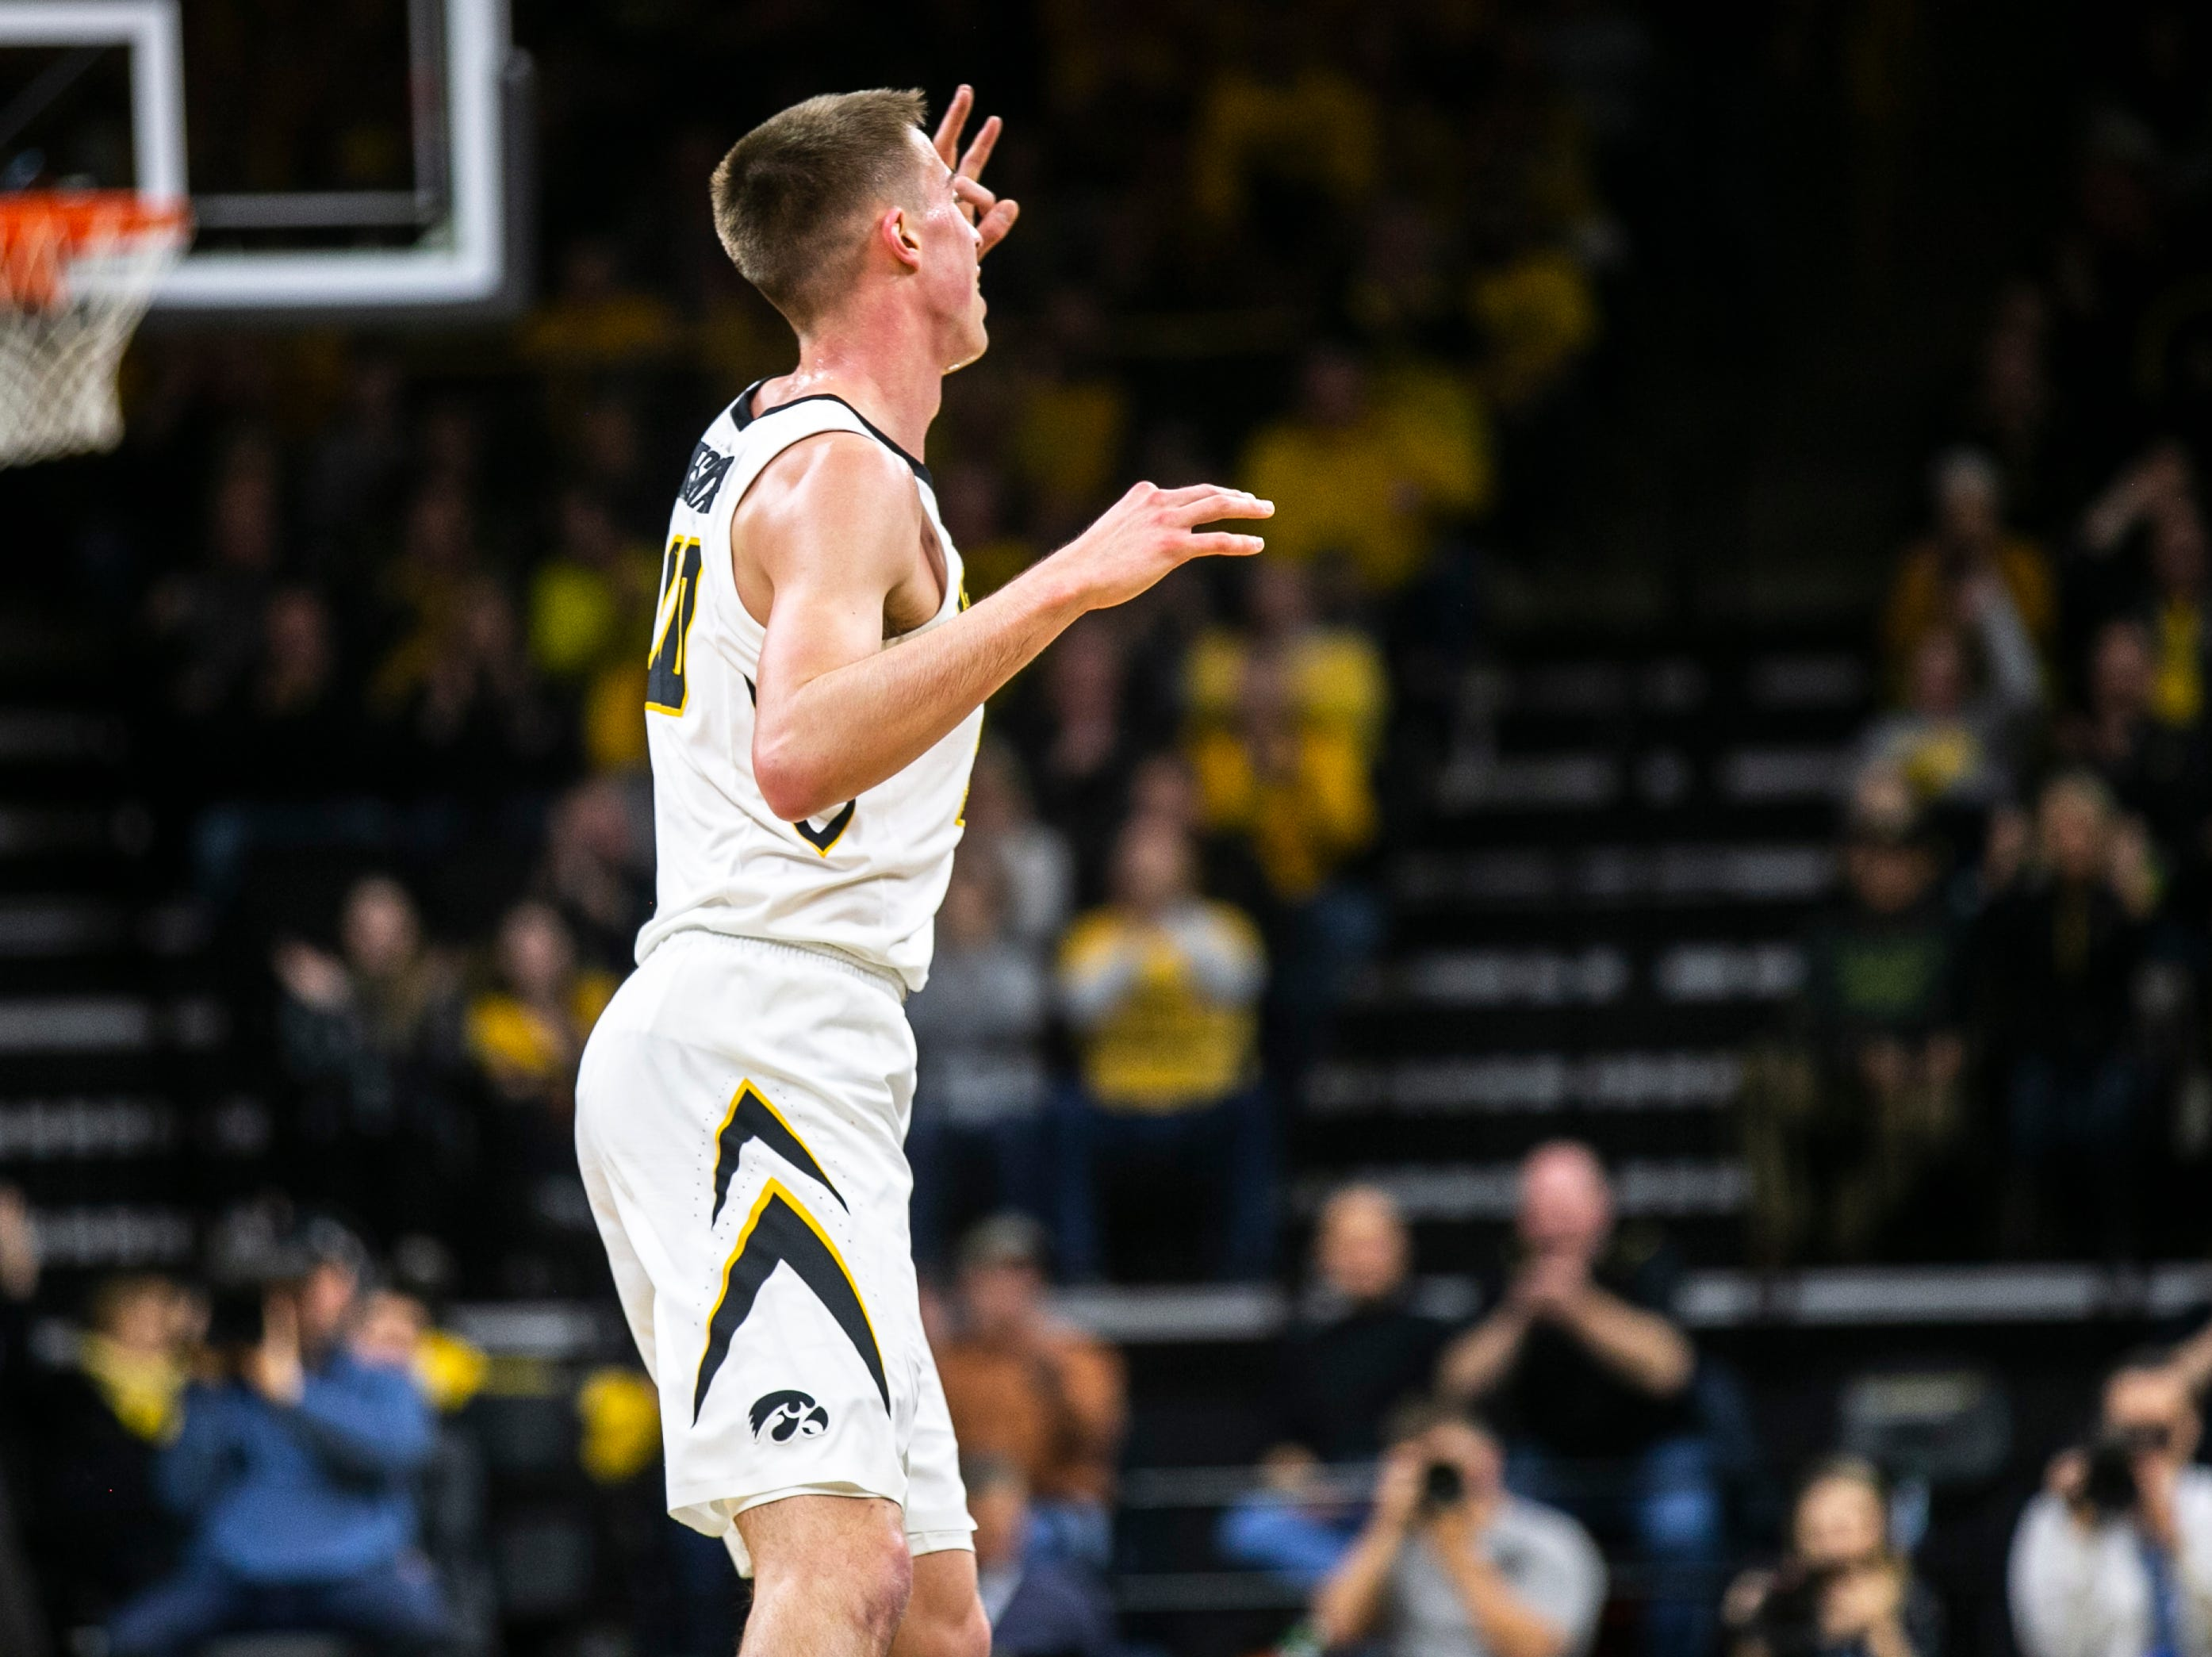 Iowa guard Joe Wieskamp (10) celebrates after making a 3-point basket during a NCAA Big Ten Conference men's basketball game on Friday, Feb. 1, 2019, at Carver-Hawkeye Arena in Iowa City, Iowa.